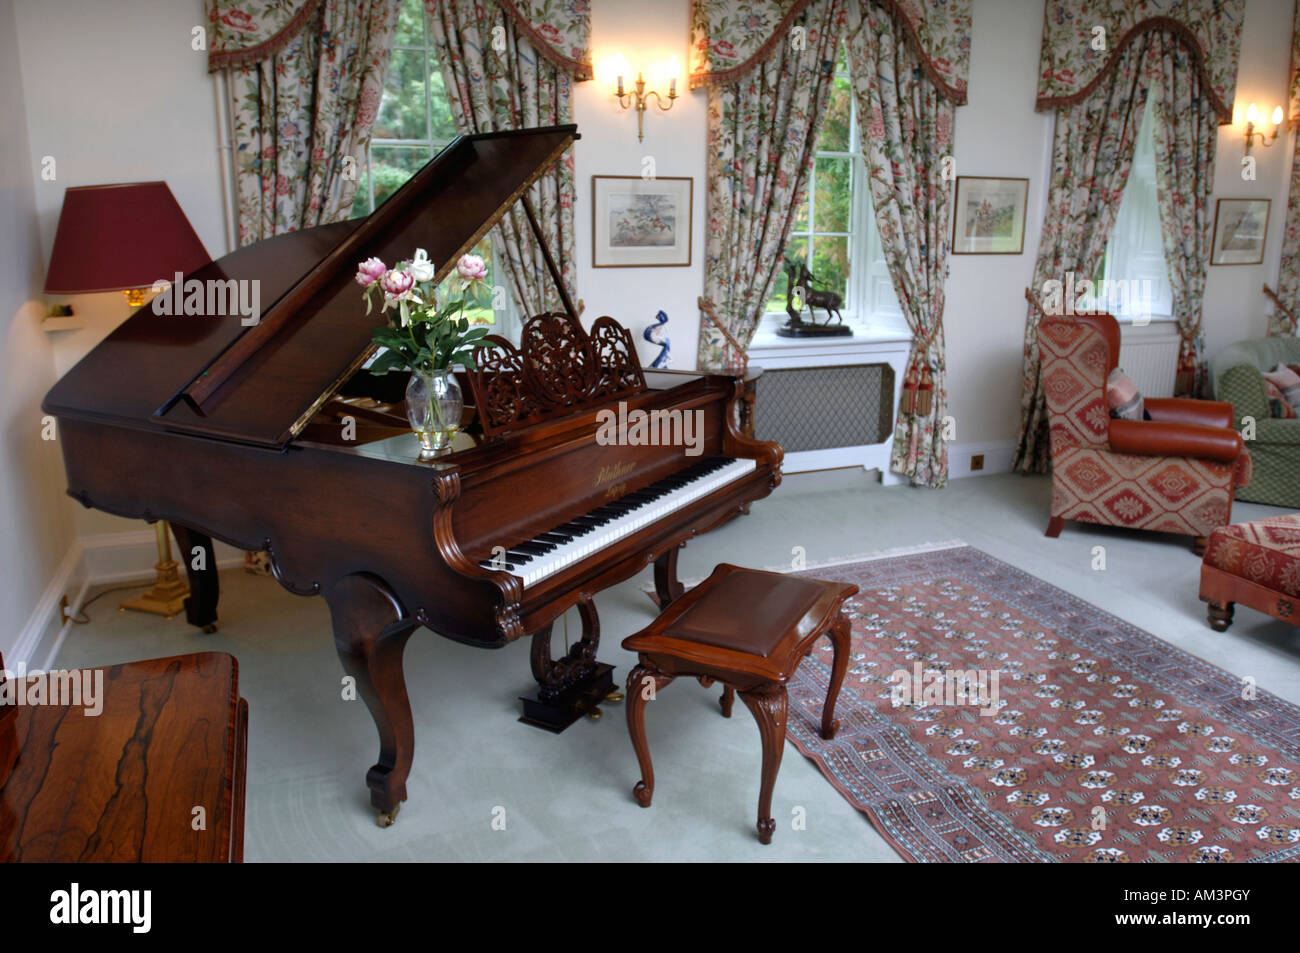 grand piano in living room stock photos grand piano in living room stock images alamy. Black Bedroom Furniture Sets. Home Design Ideas